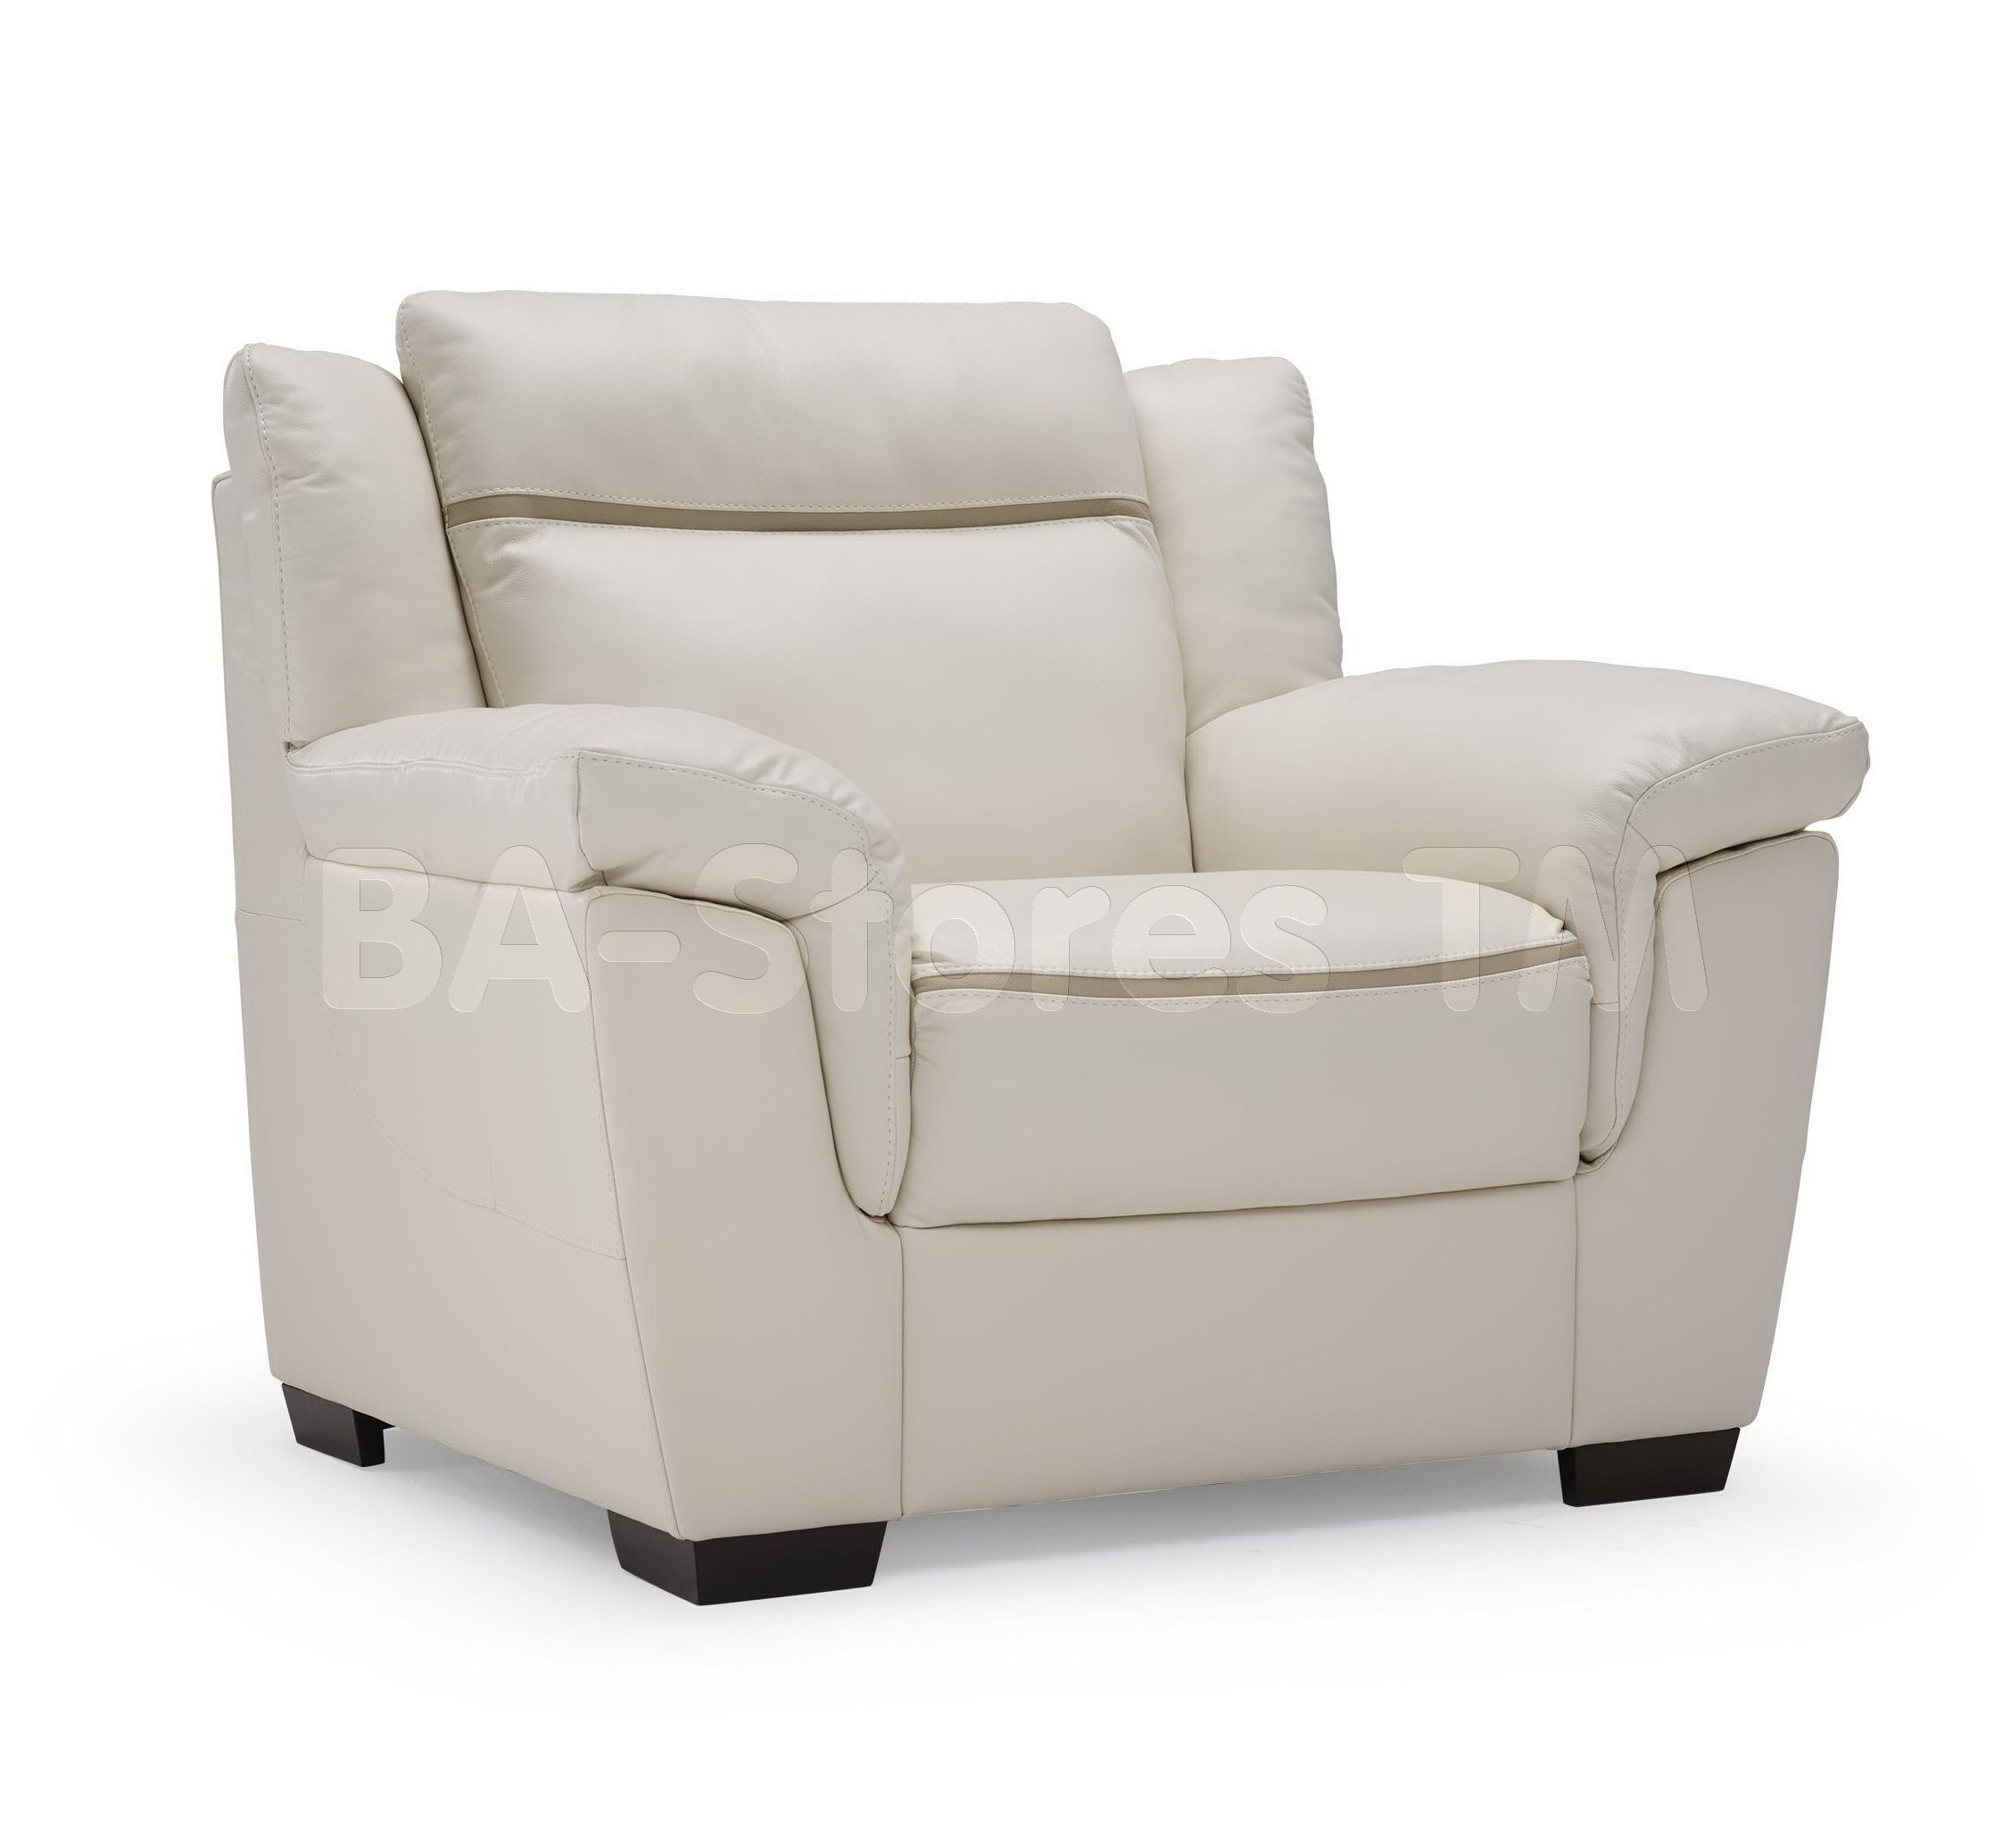 Natuzzi Editions Casual Contemporary Leather Chair B865